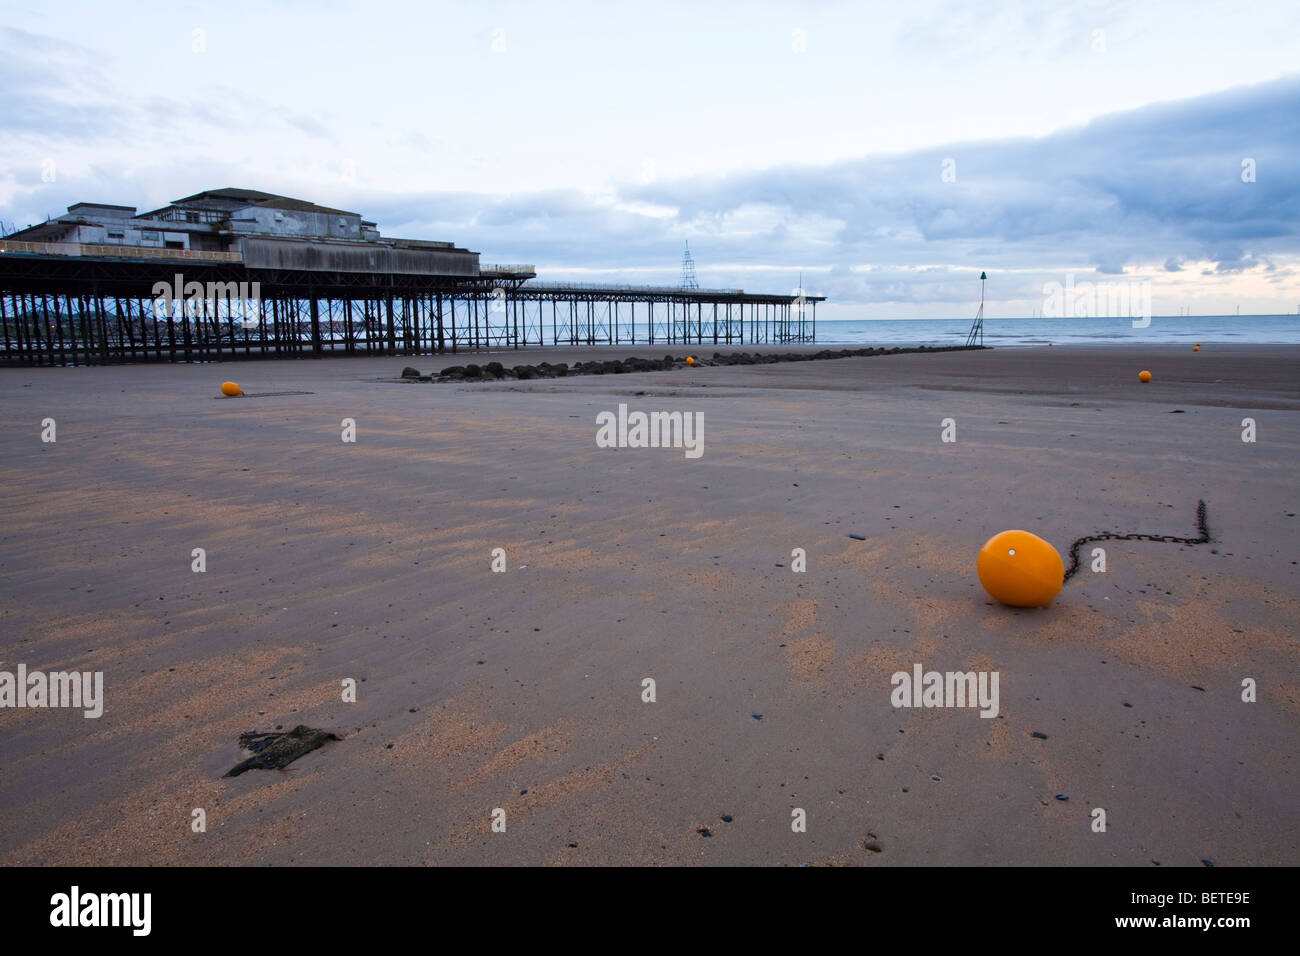 Morning over the deserted and almost derelict Victoria pier at Colwyn Bay in North Wales, UK. - Stock Image